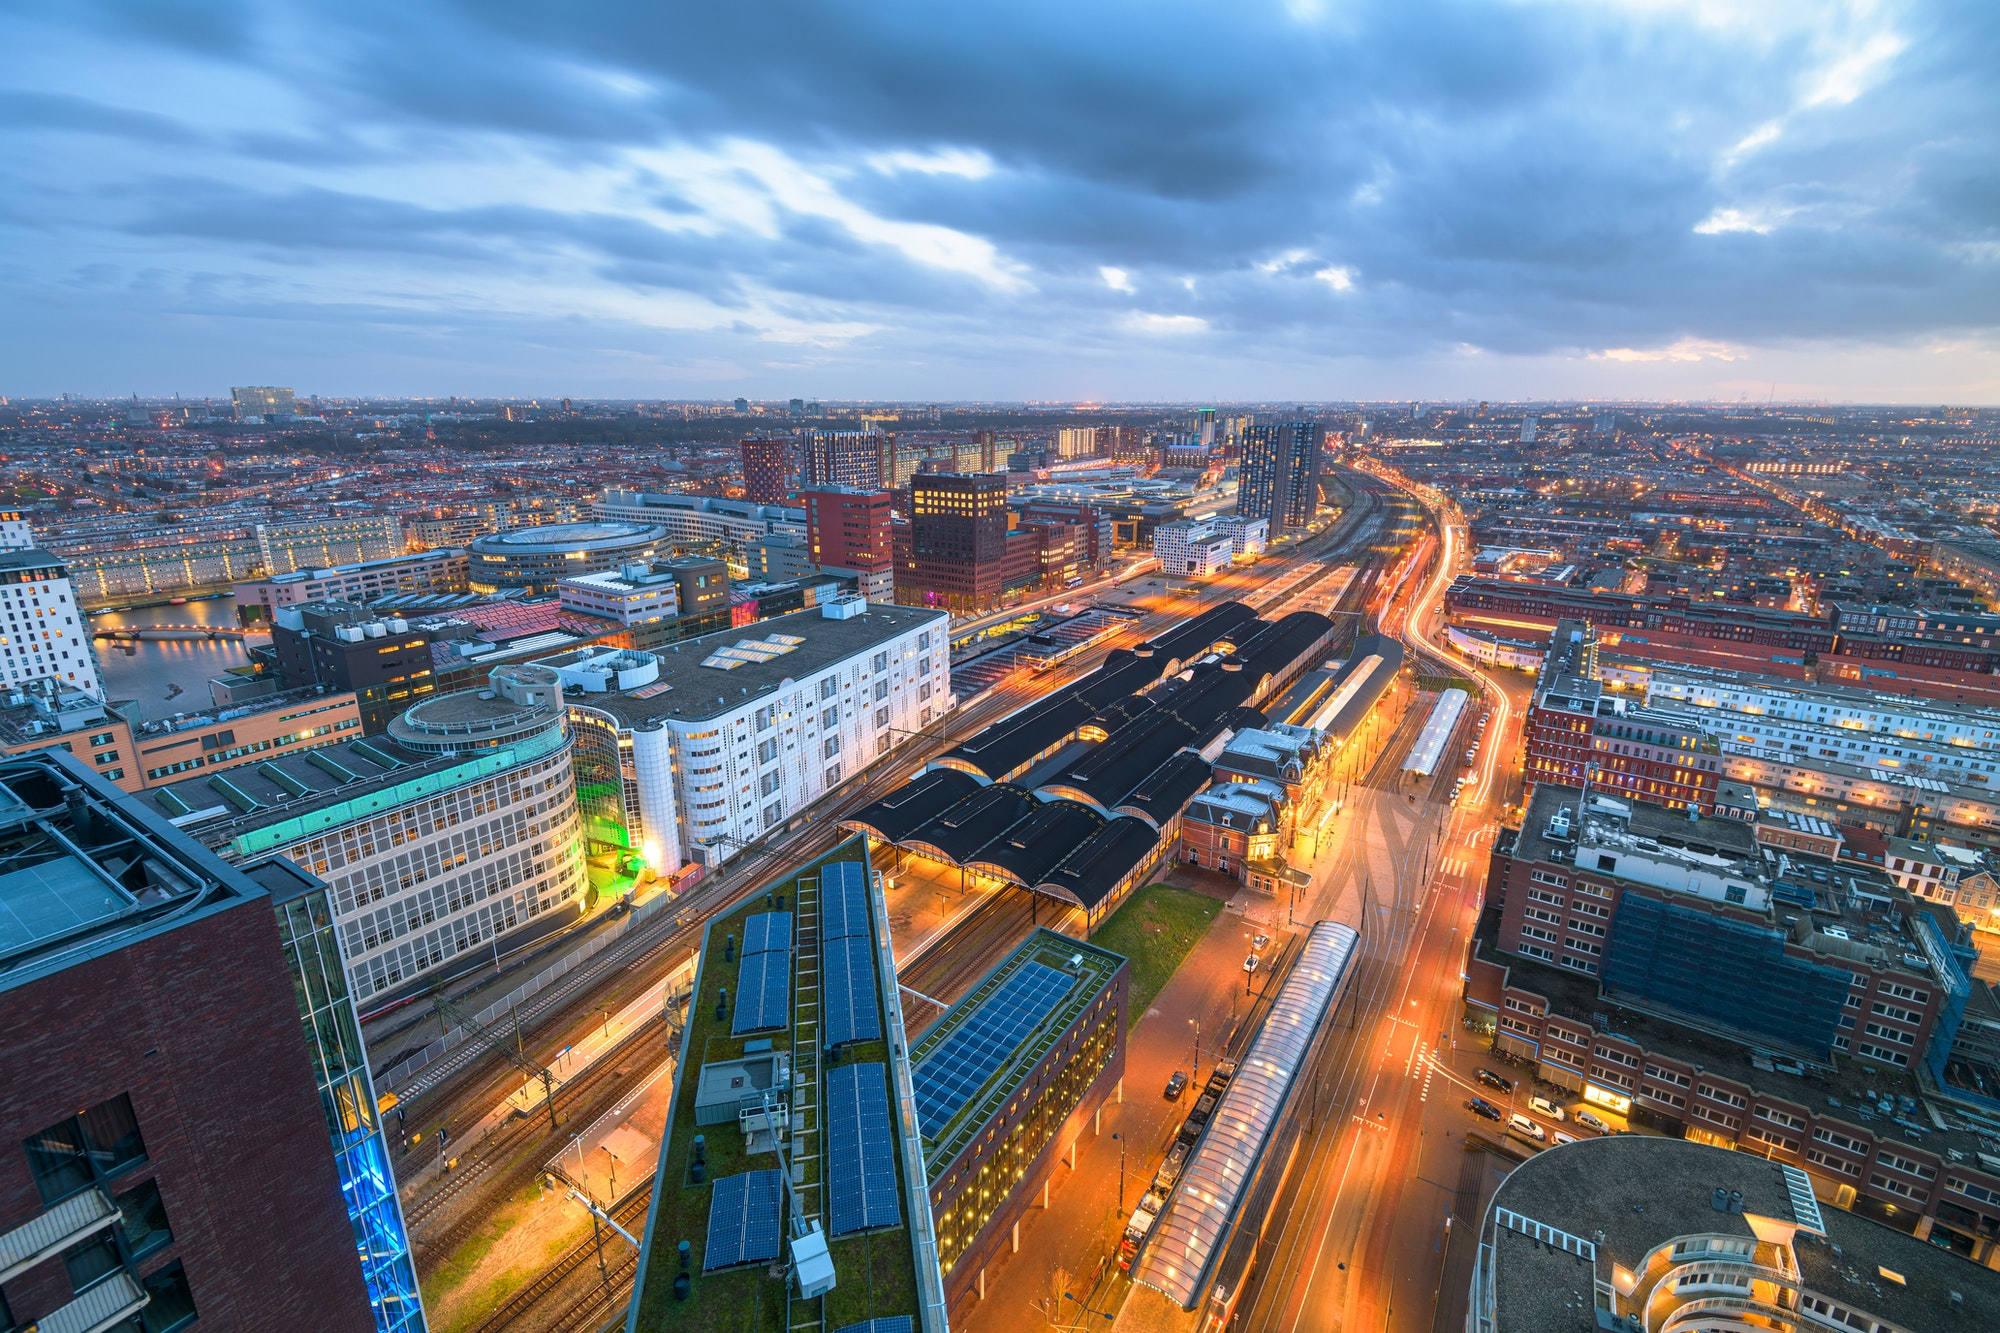 The Hague, Netherlands Cityscape